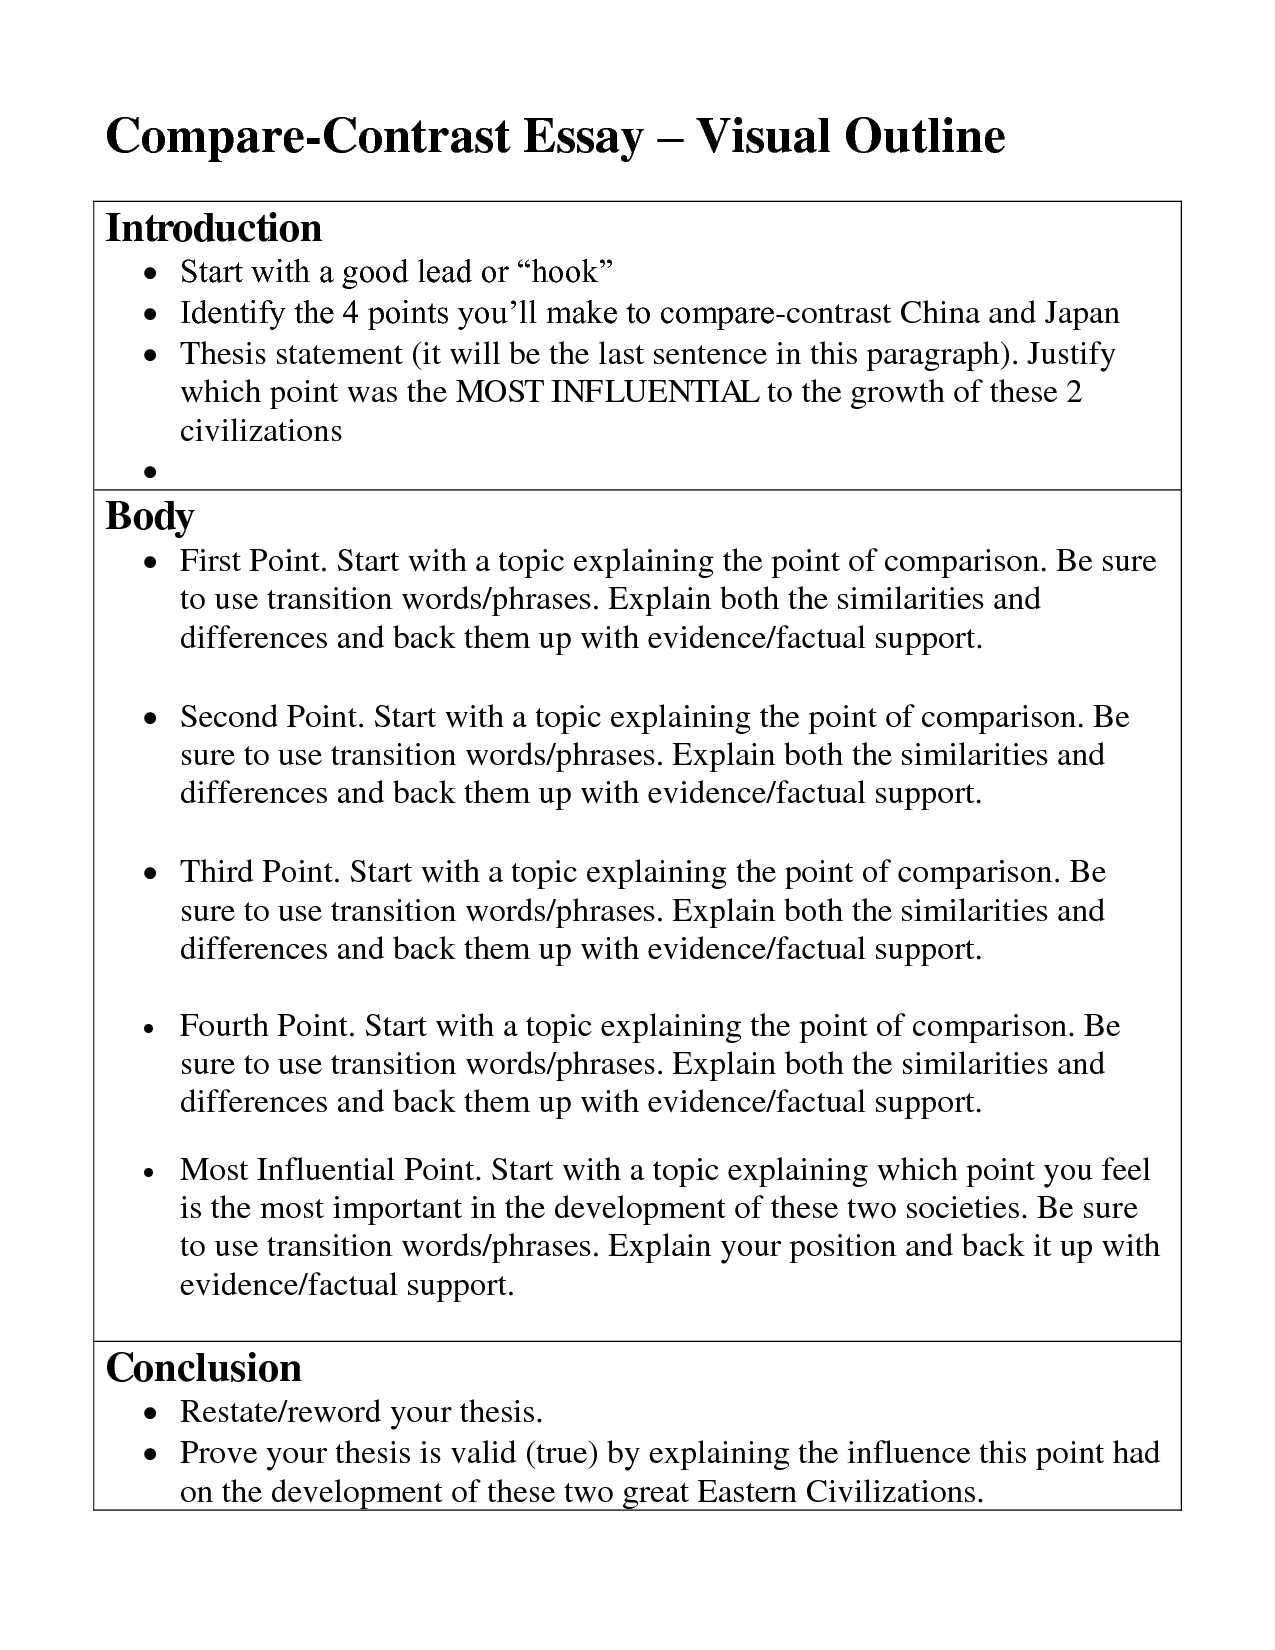 Citizenship In the Community Worksheet together with Essay Search Engine Controversial Essay topics for College Students